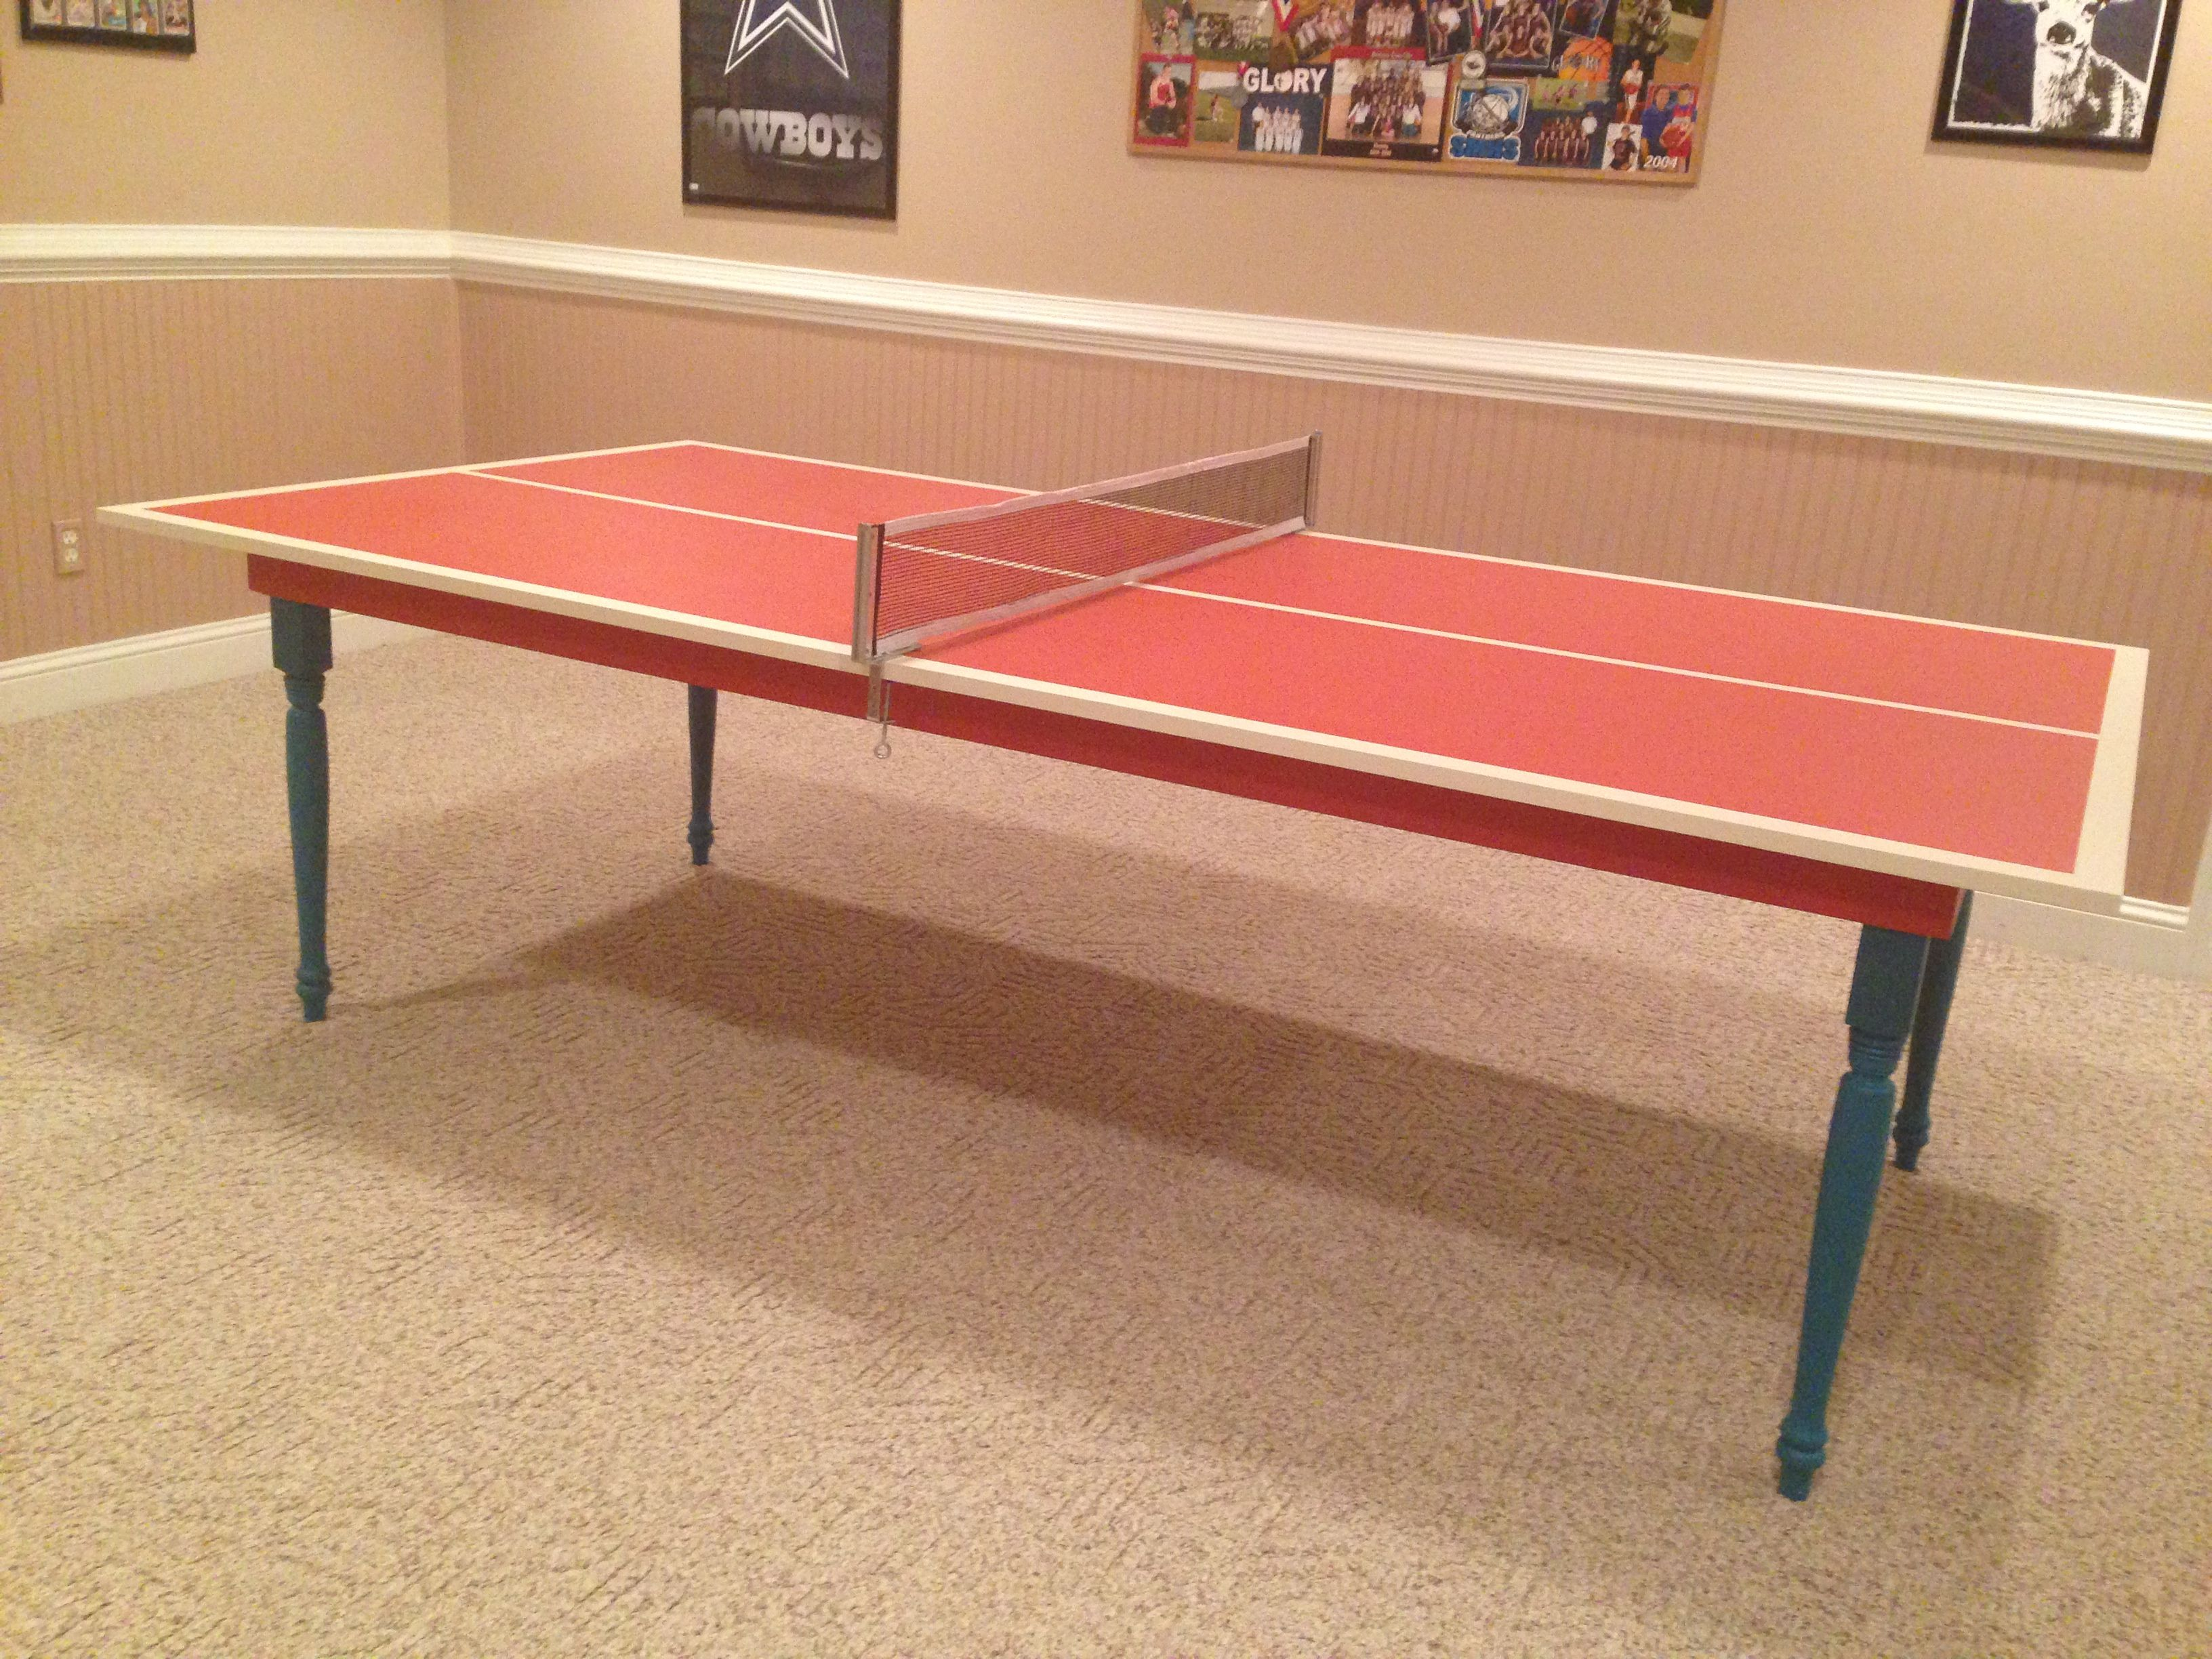 Charming Having A Ping Pong Table Is A MUST For Me, Thereu0027s Just Nothing Like  Relieving